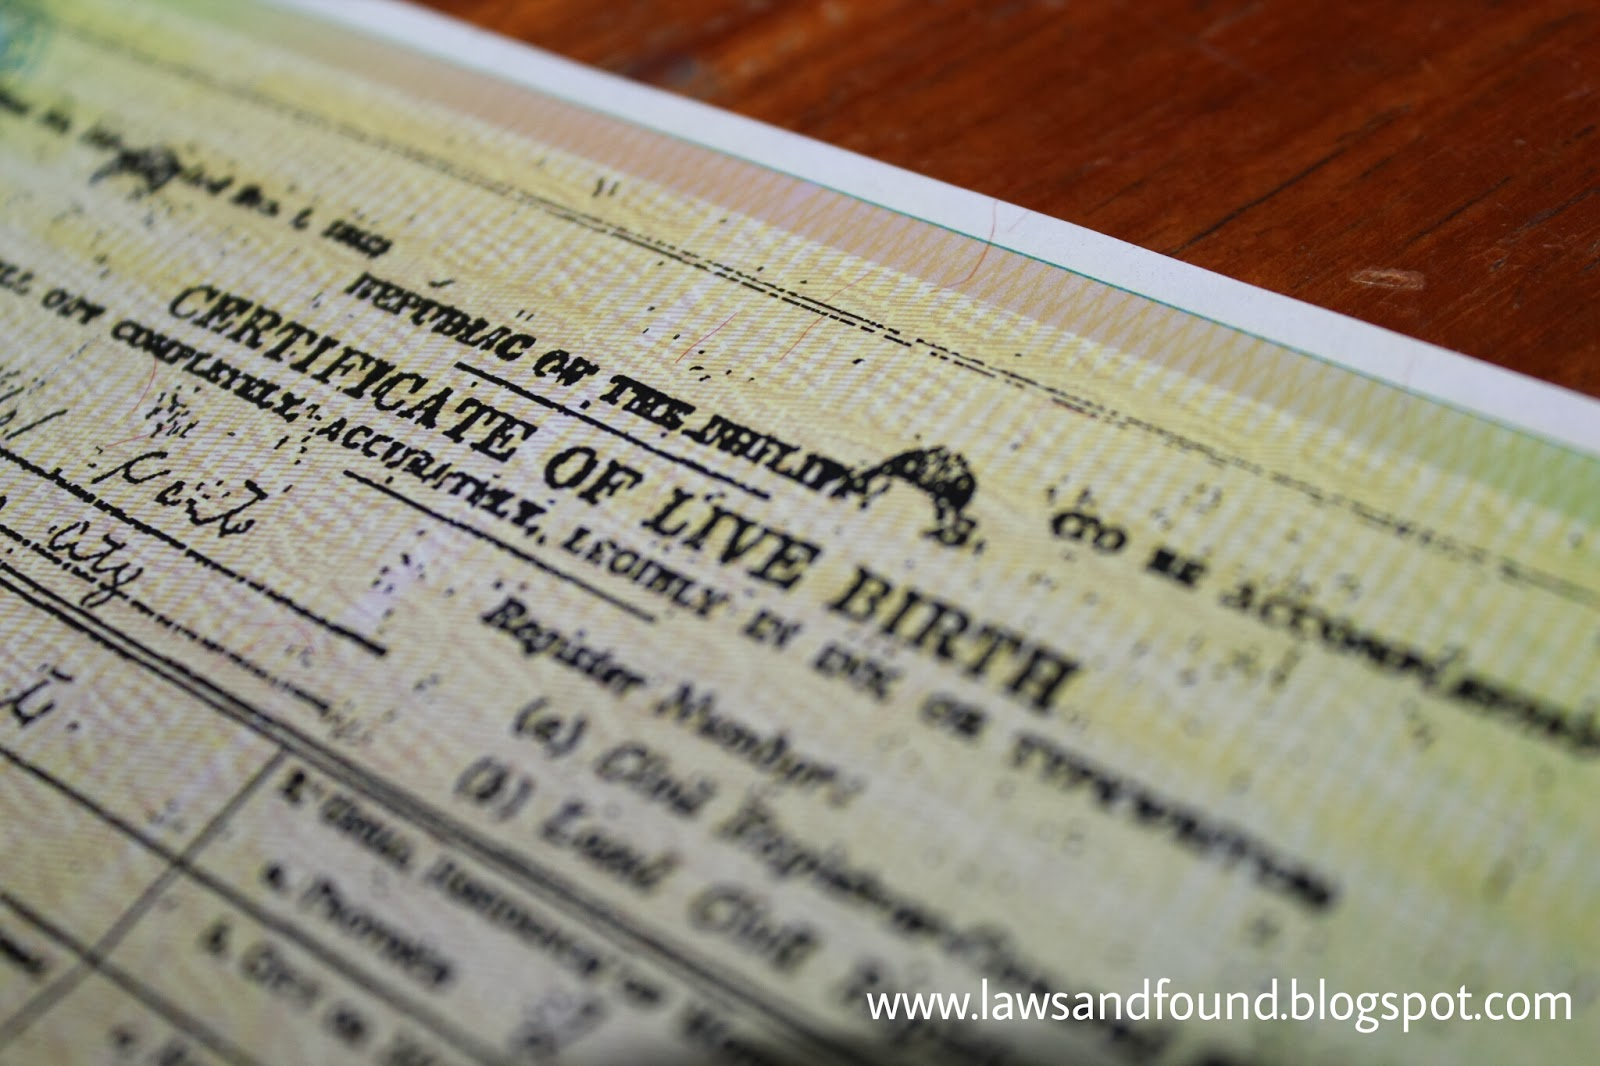 Laws And Found How To Correct Birth Certificate Clerical Entry